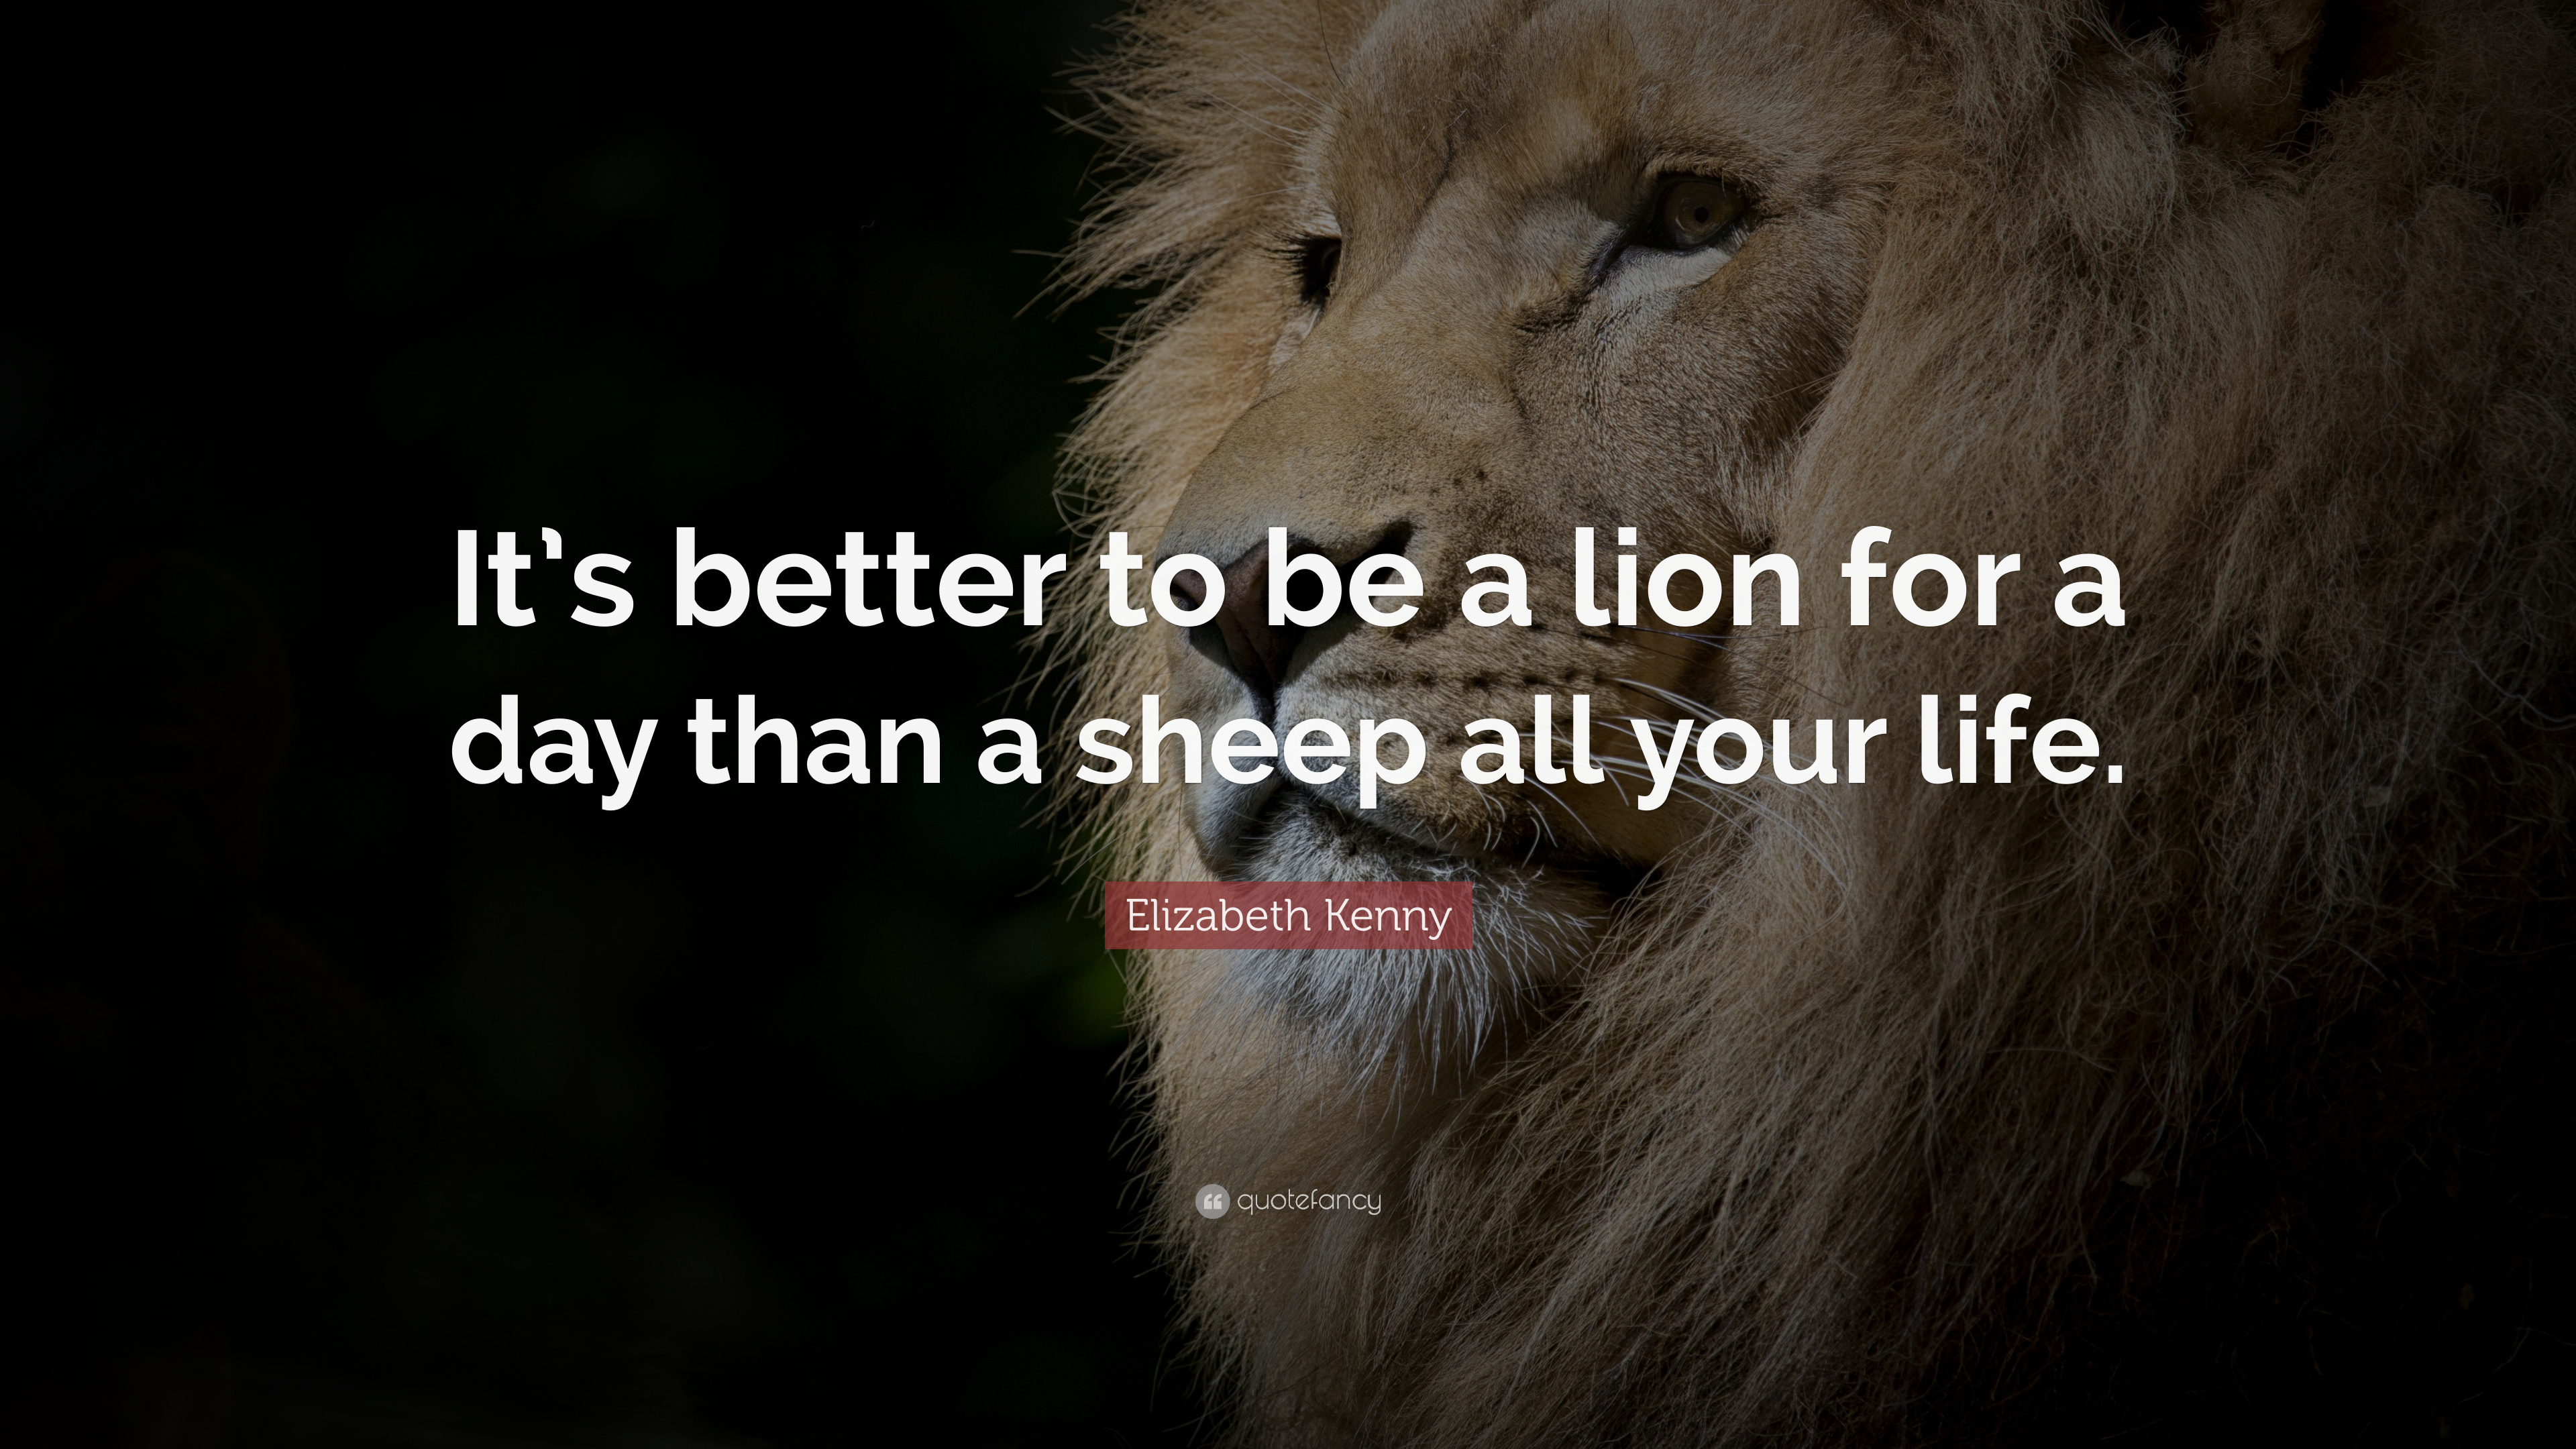 Quotes On Lion 2